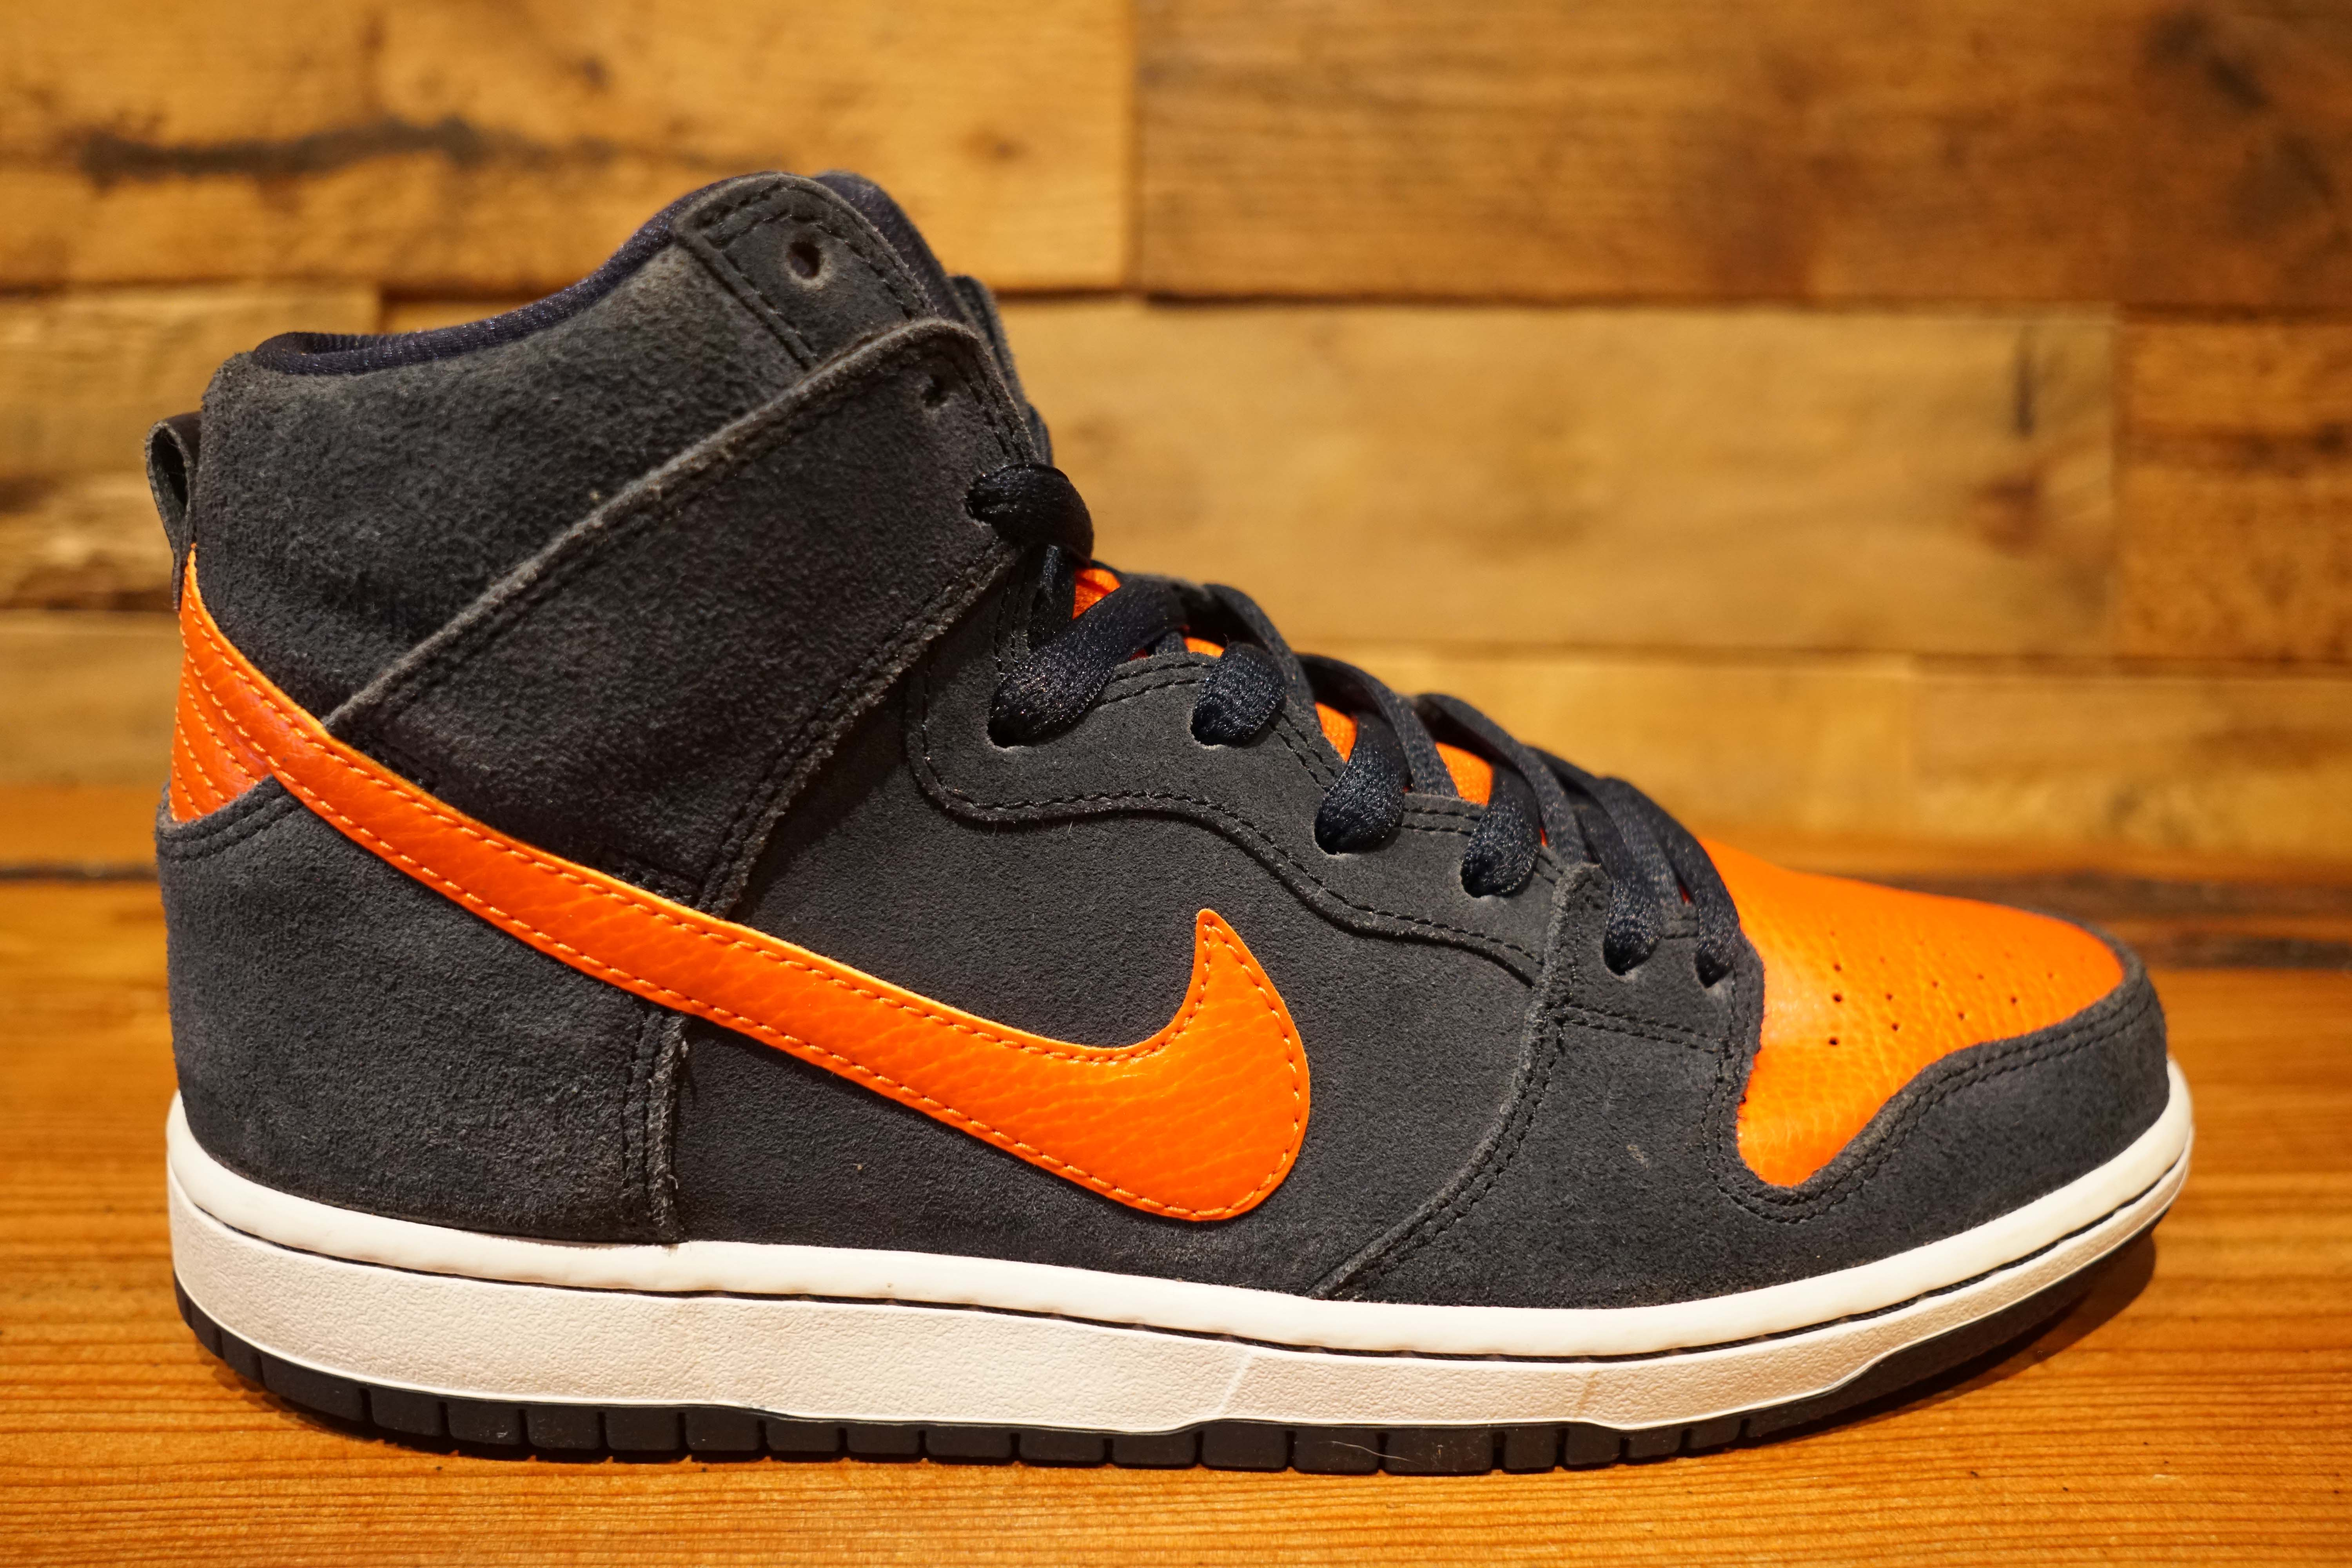 Nike-Dunk-High-SB-SYRACUSE-2014-Used-Replacement-Box-Size-9.5-3633-7_17492A.jpg